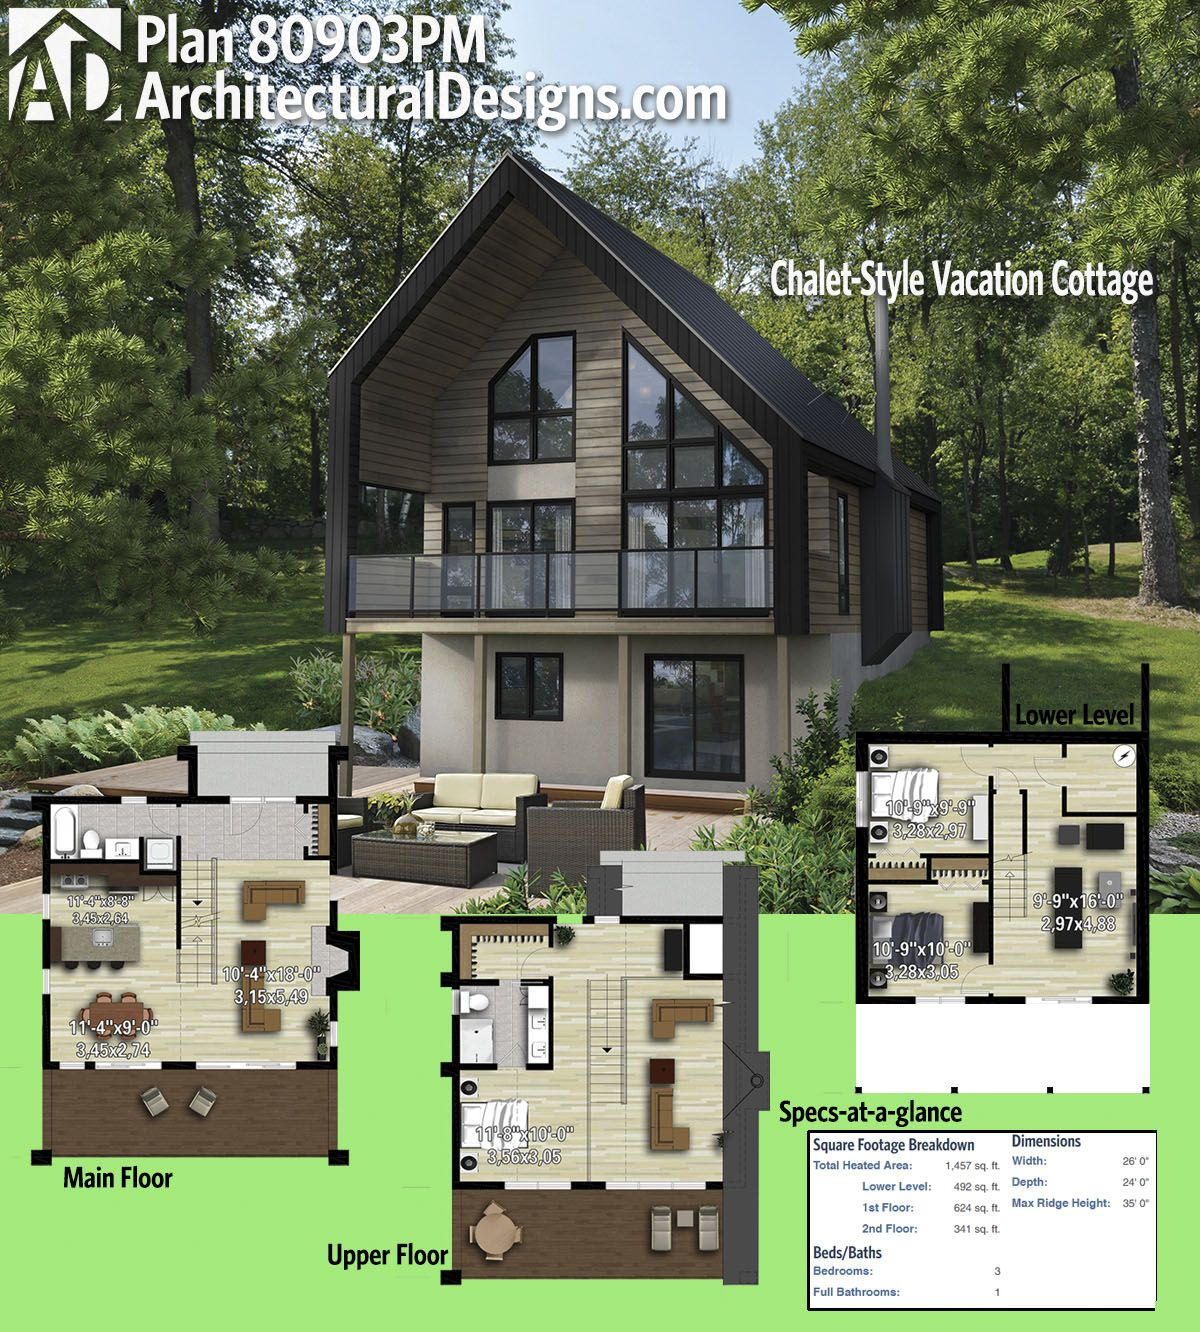 Architectural Designs Vacation Cottage House Plan 80903PM